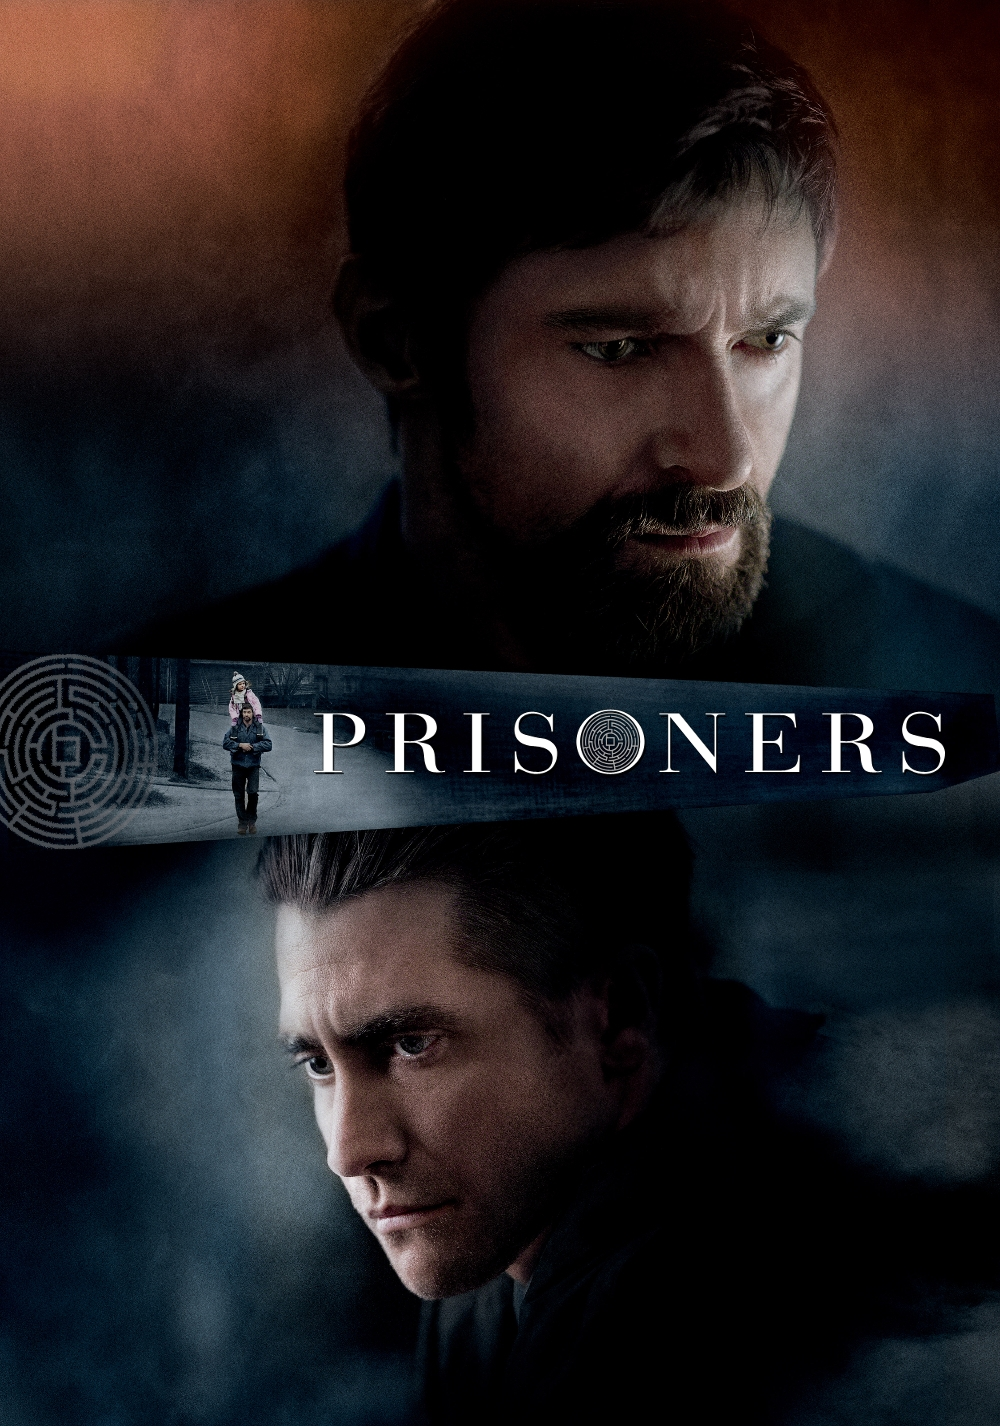 PRISONERS (2013) TAMIL DUBBED HD